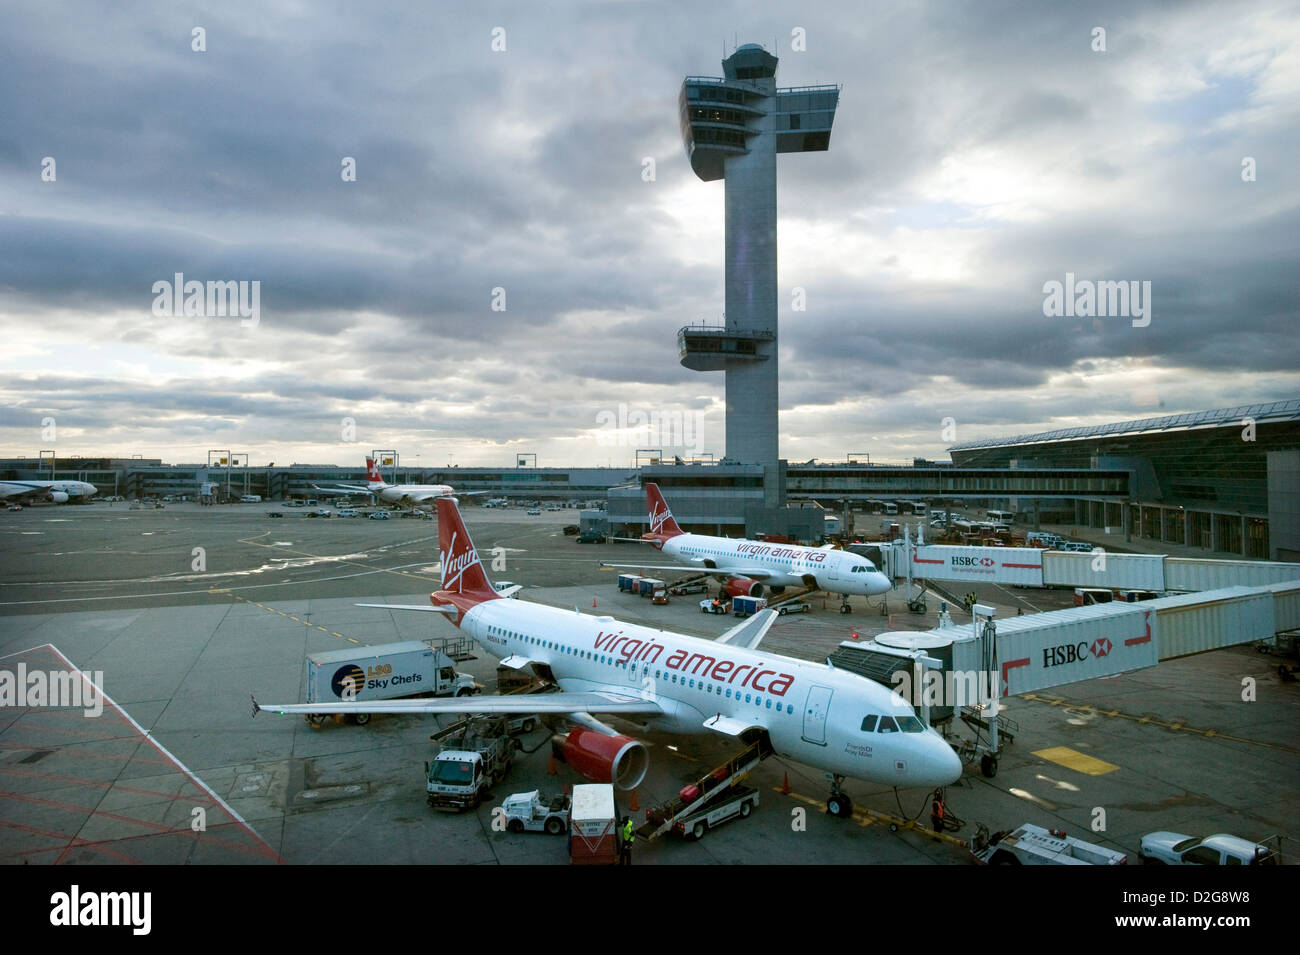 Two Virgin America Airbus A320 jet Aircraft stand in front of the Control Tower at John F. Kennedy Airport, JFK - Stock Image